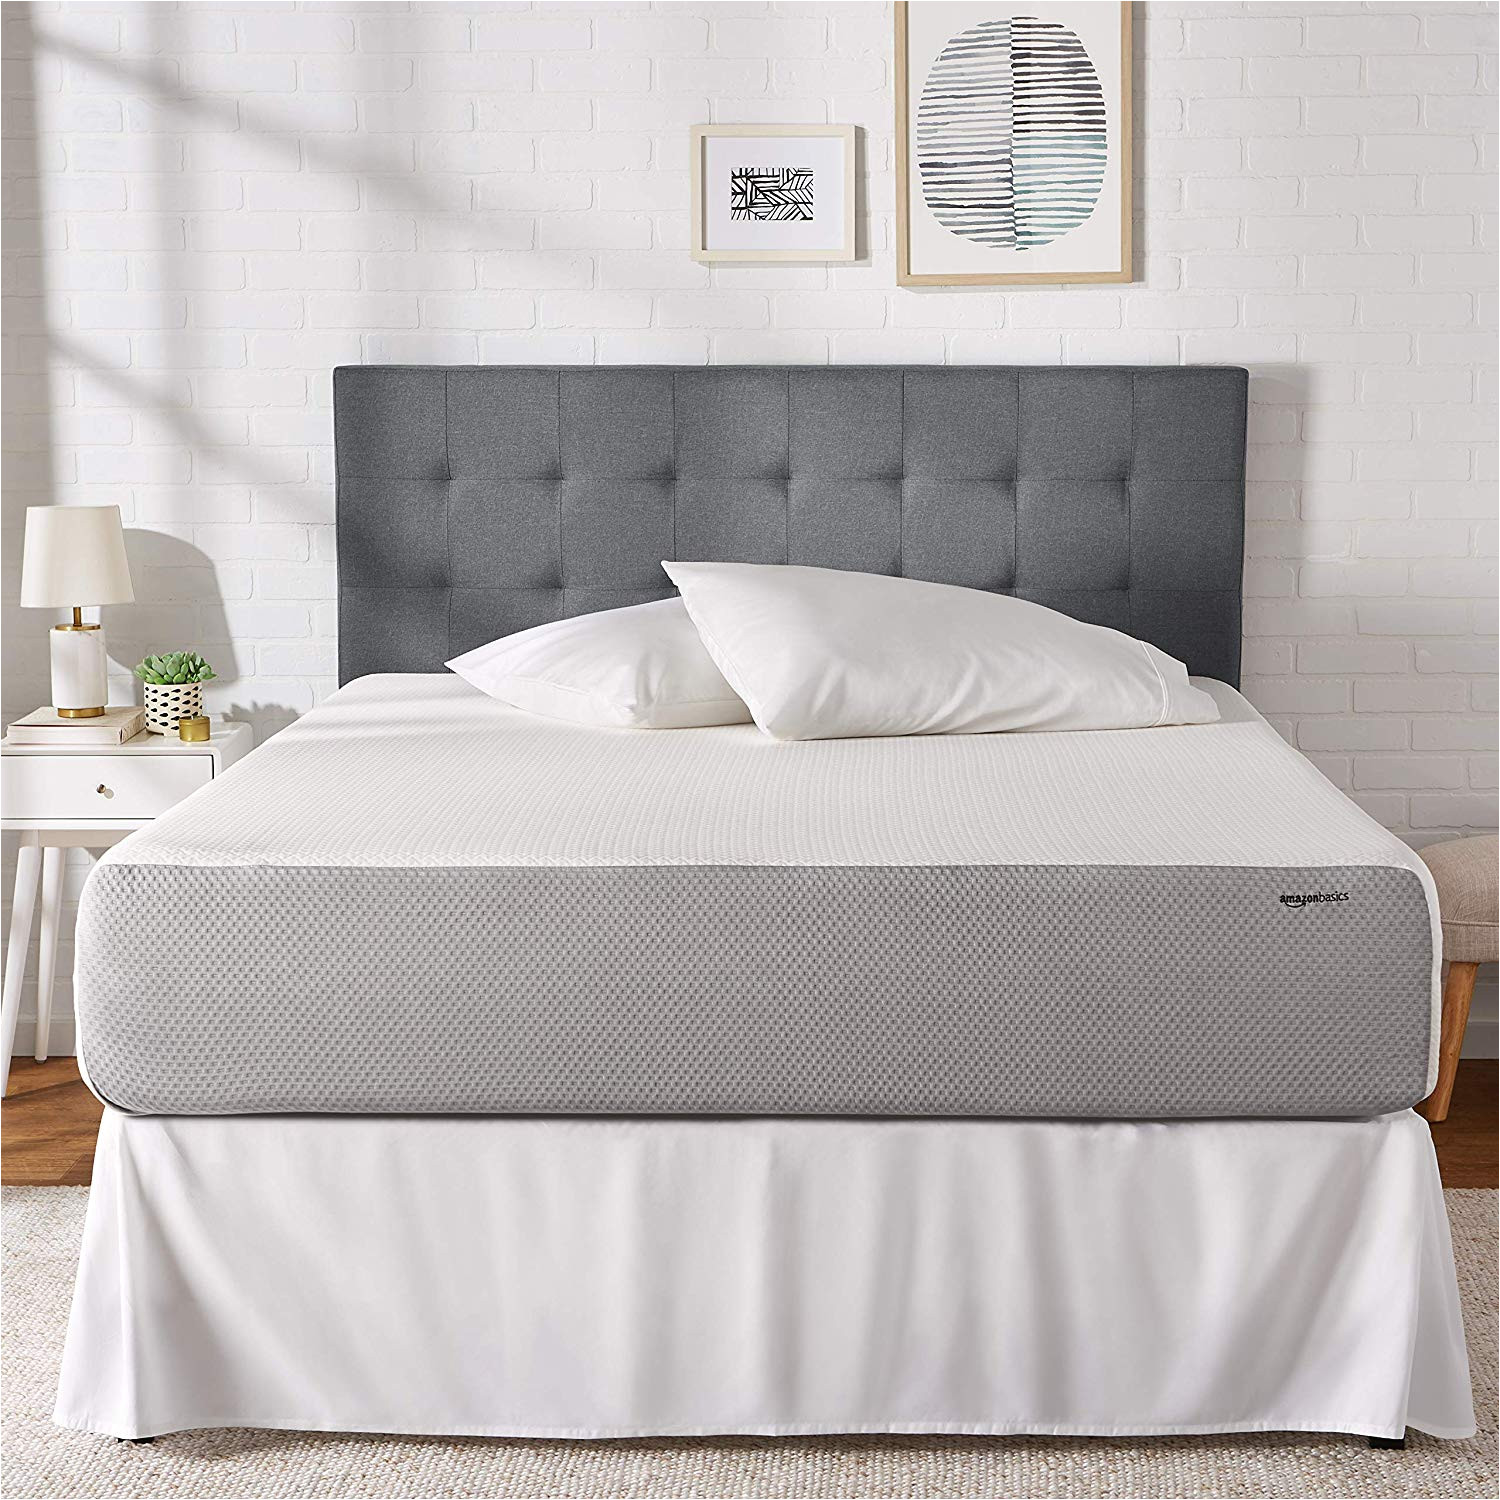 $99 Queen Mattress and Box Spring Amazon Com Amazonbasics Memory Foam Mattress soft Plush Feel